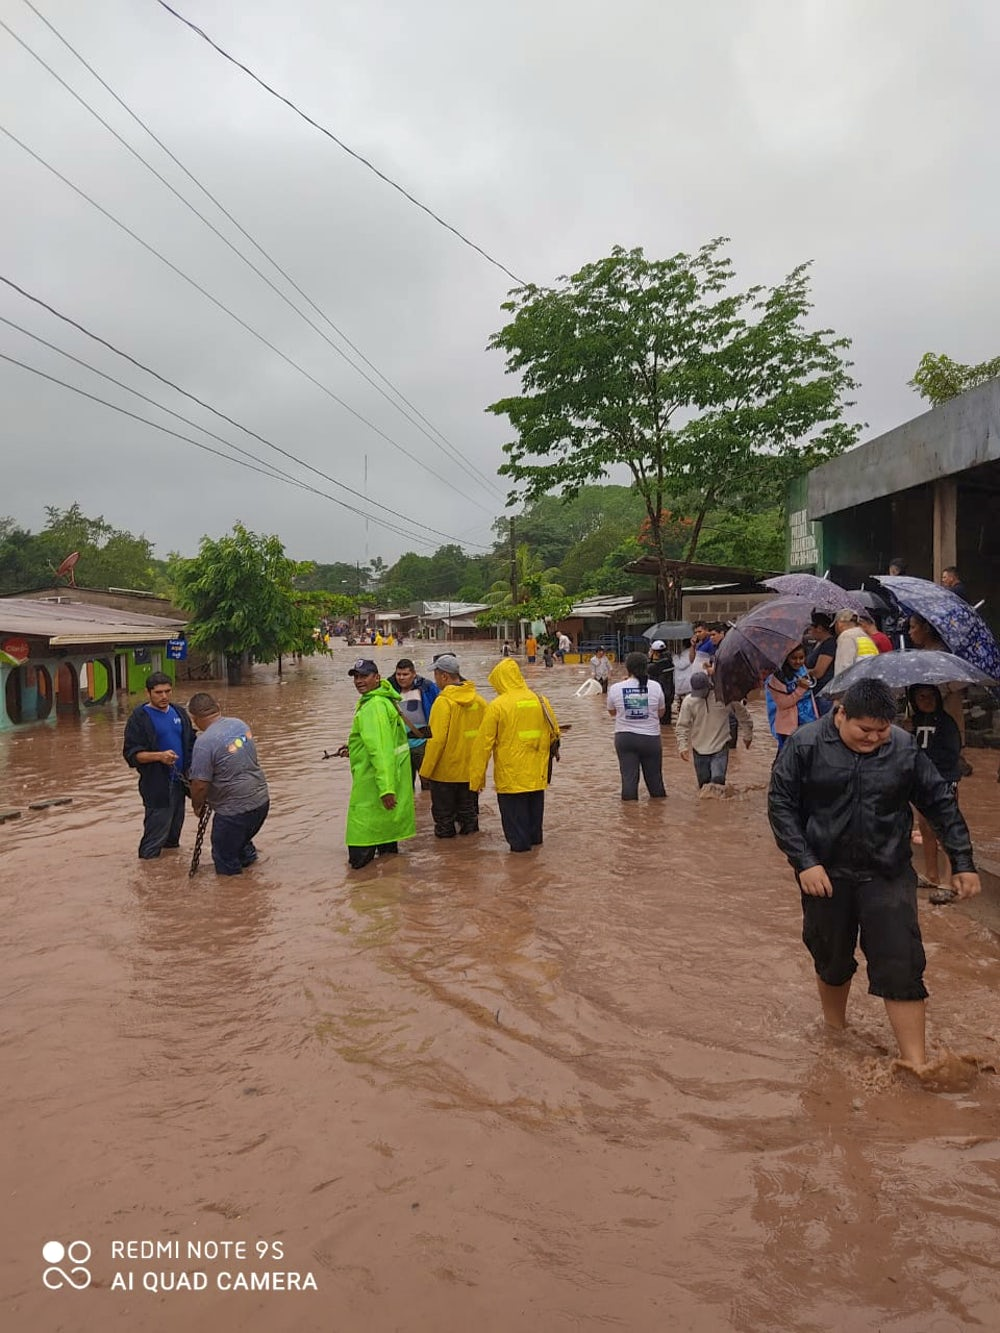 Residents of Waslala, a town and municipality in Nicaragua's North Caribbean Coast Autonomous Region, wade through flood waters caused by Hurricane Iota.Photo by Yaribell Rocha, Heifer Nicaragua Program and Communication Assistant